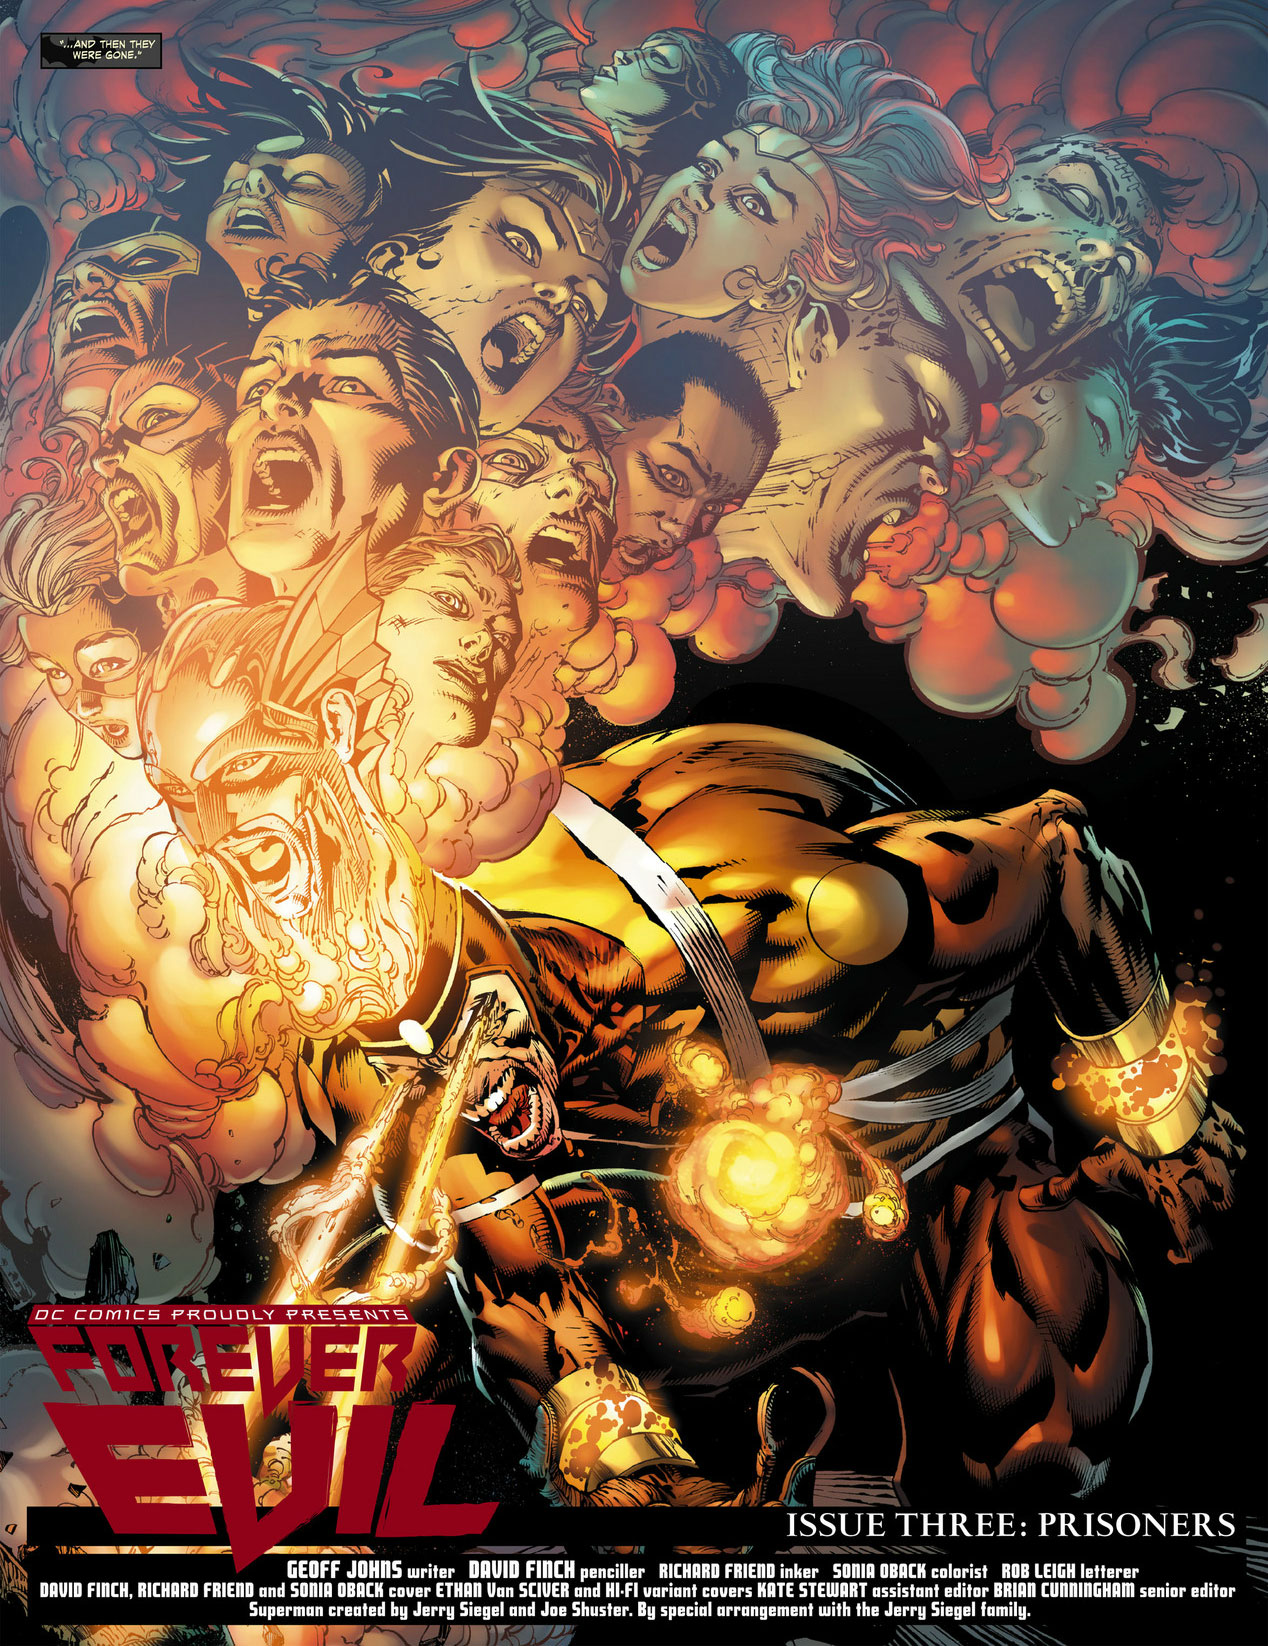 Forever Evil #3 by Geoff Johns and David Finch featuring Firestorm